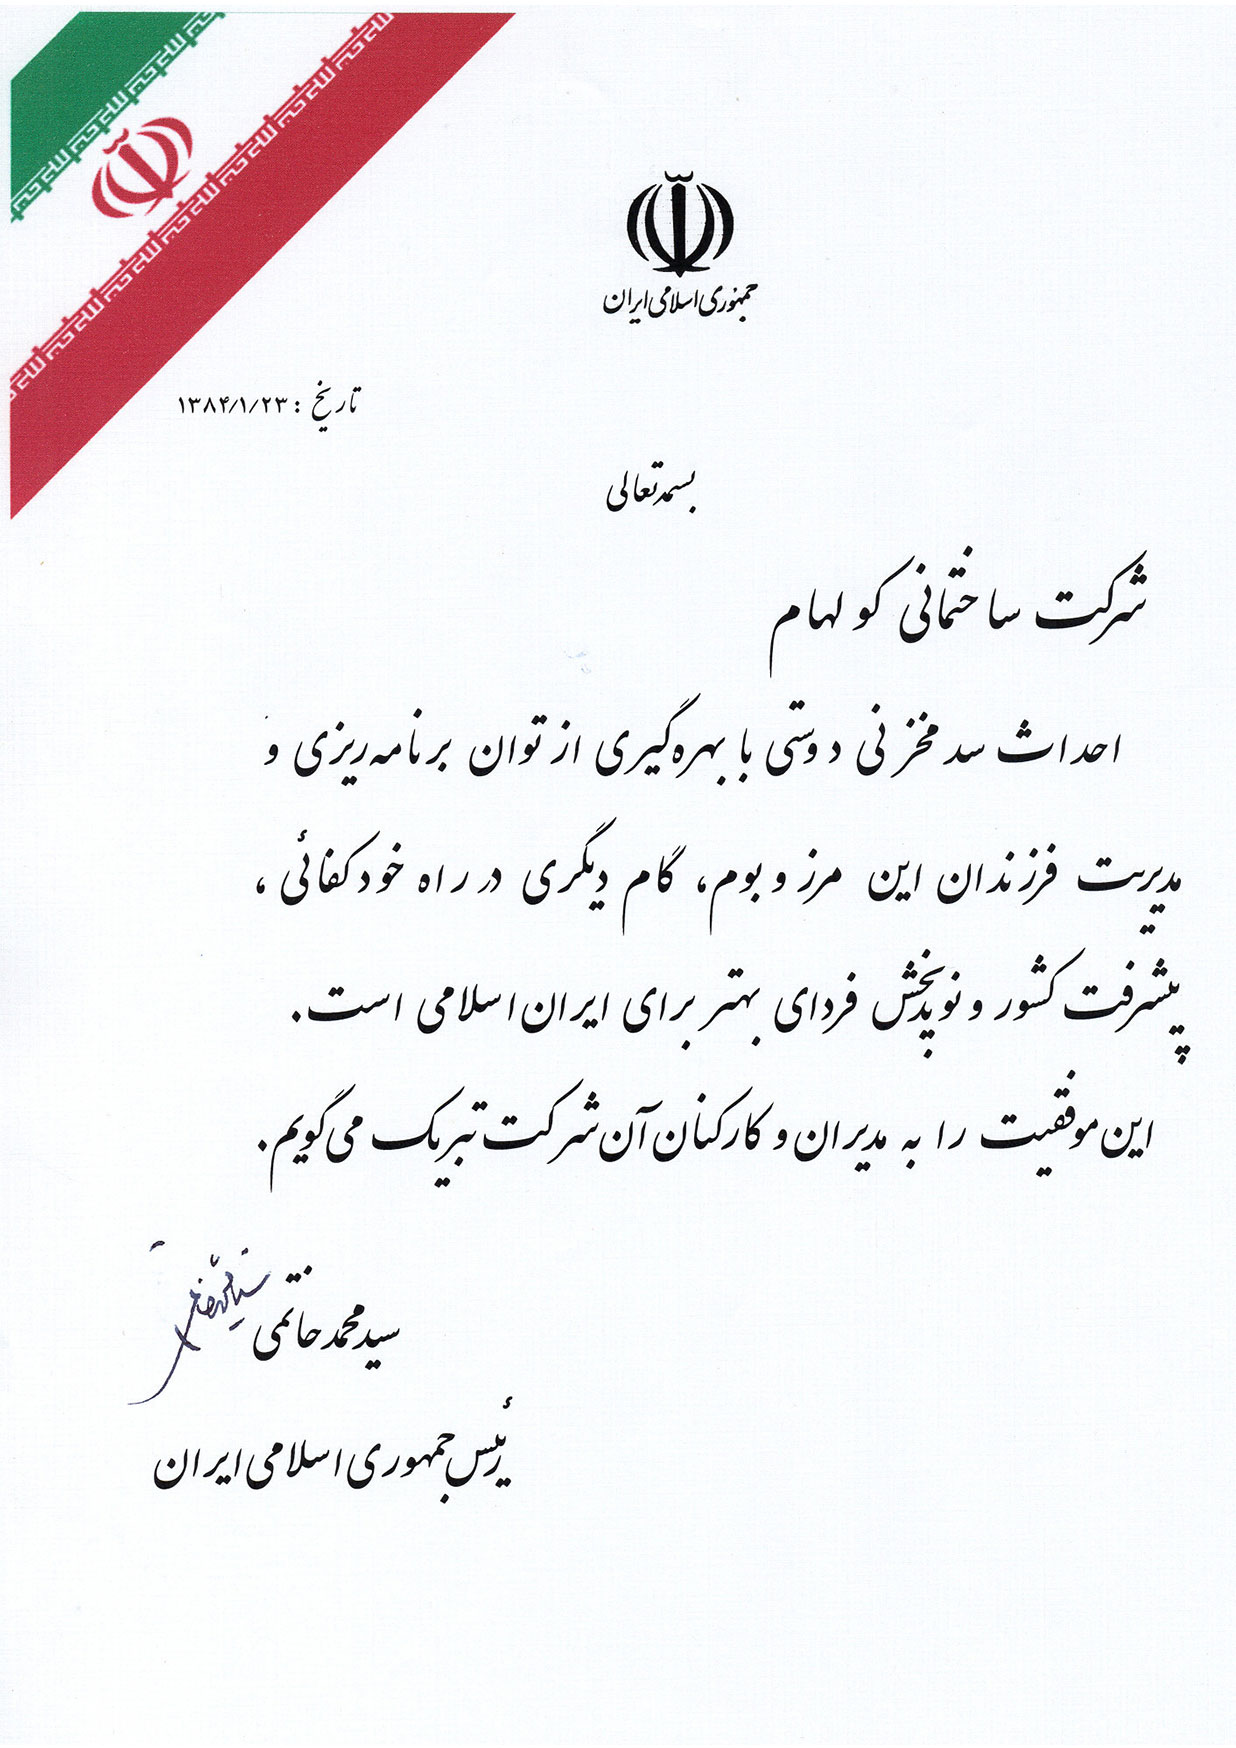 Doosti dam Appreciation letters From President Mr. Khatami